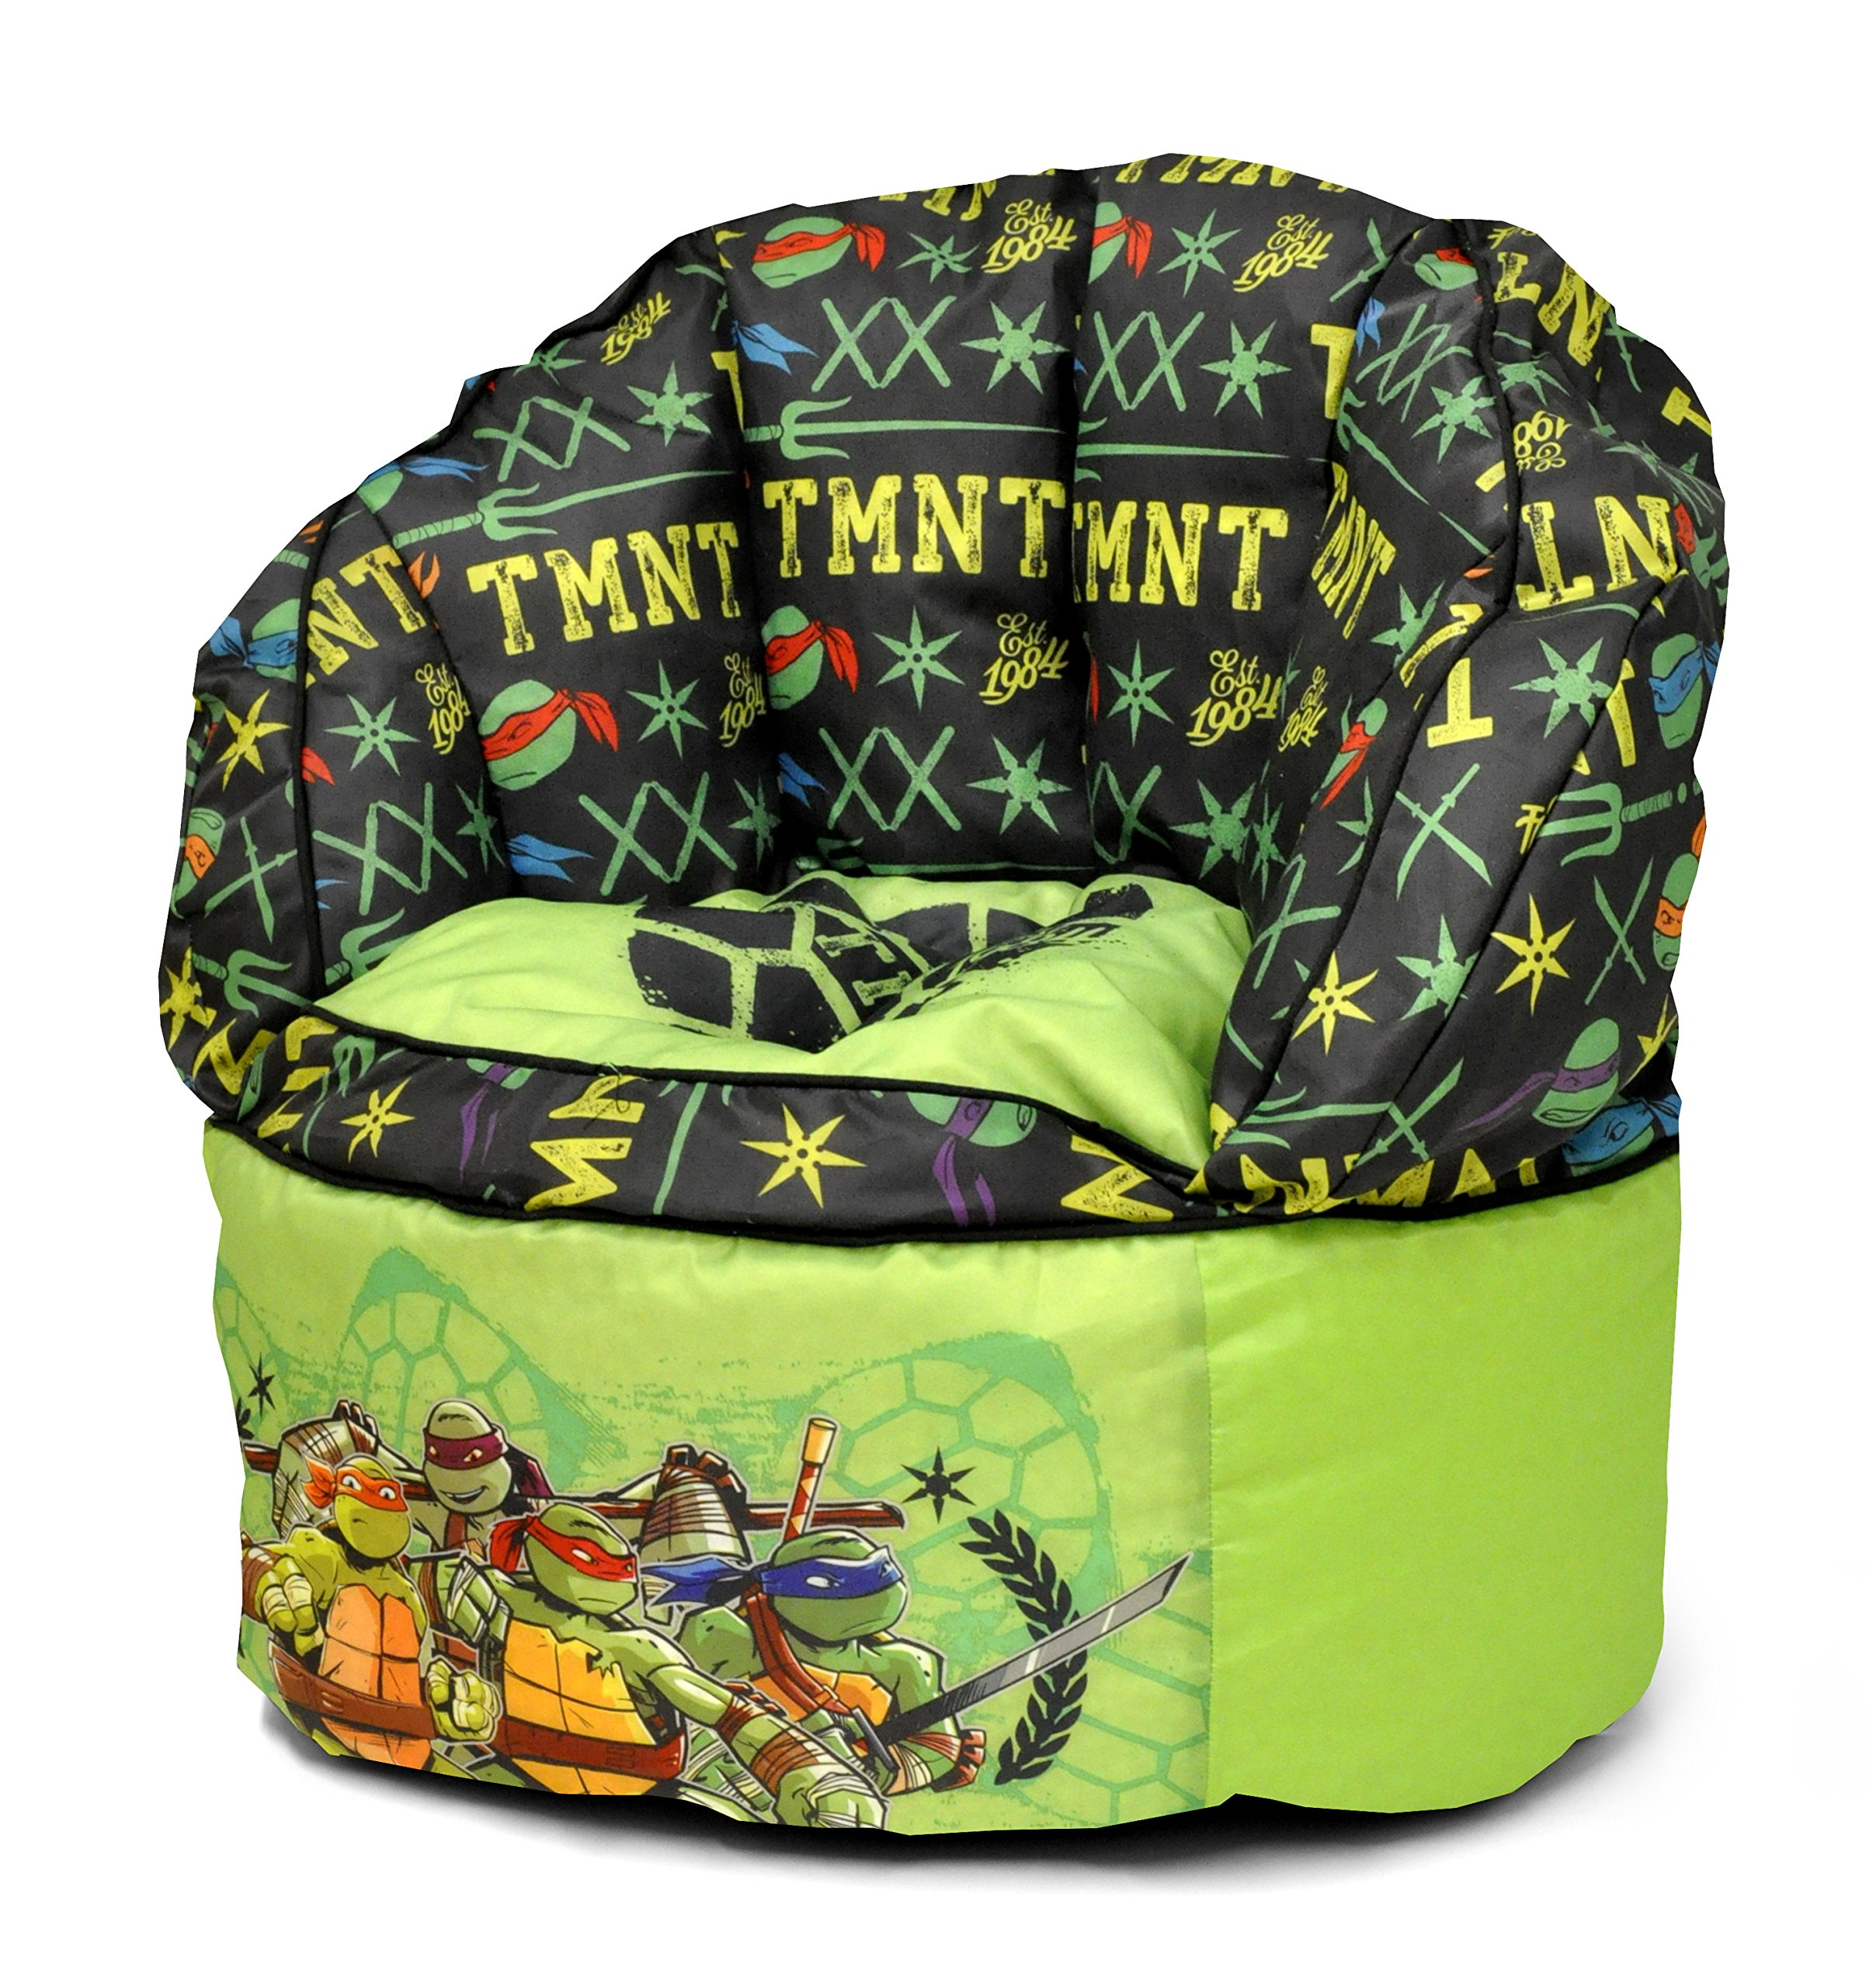 Nickelodeon Teenage Mutant Ninja Turtles Toddler Bean Bag Chair, Green,